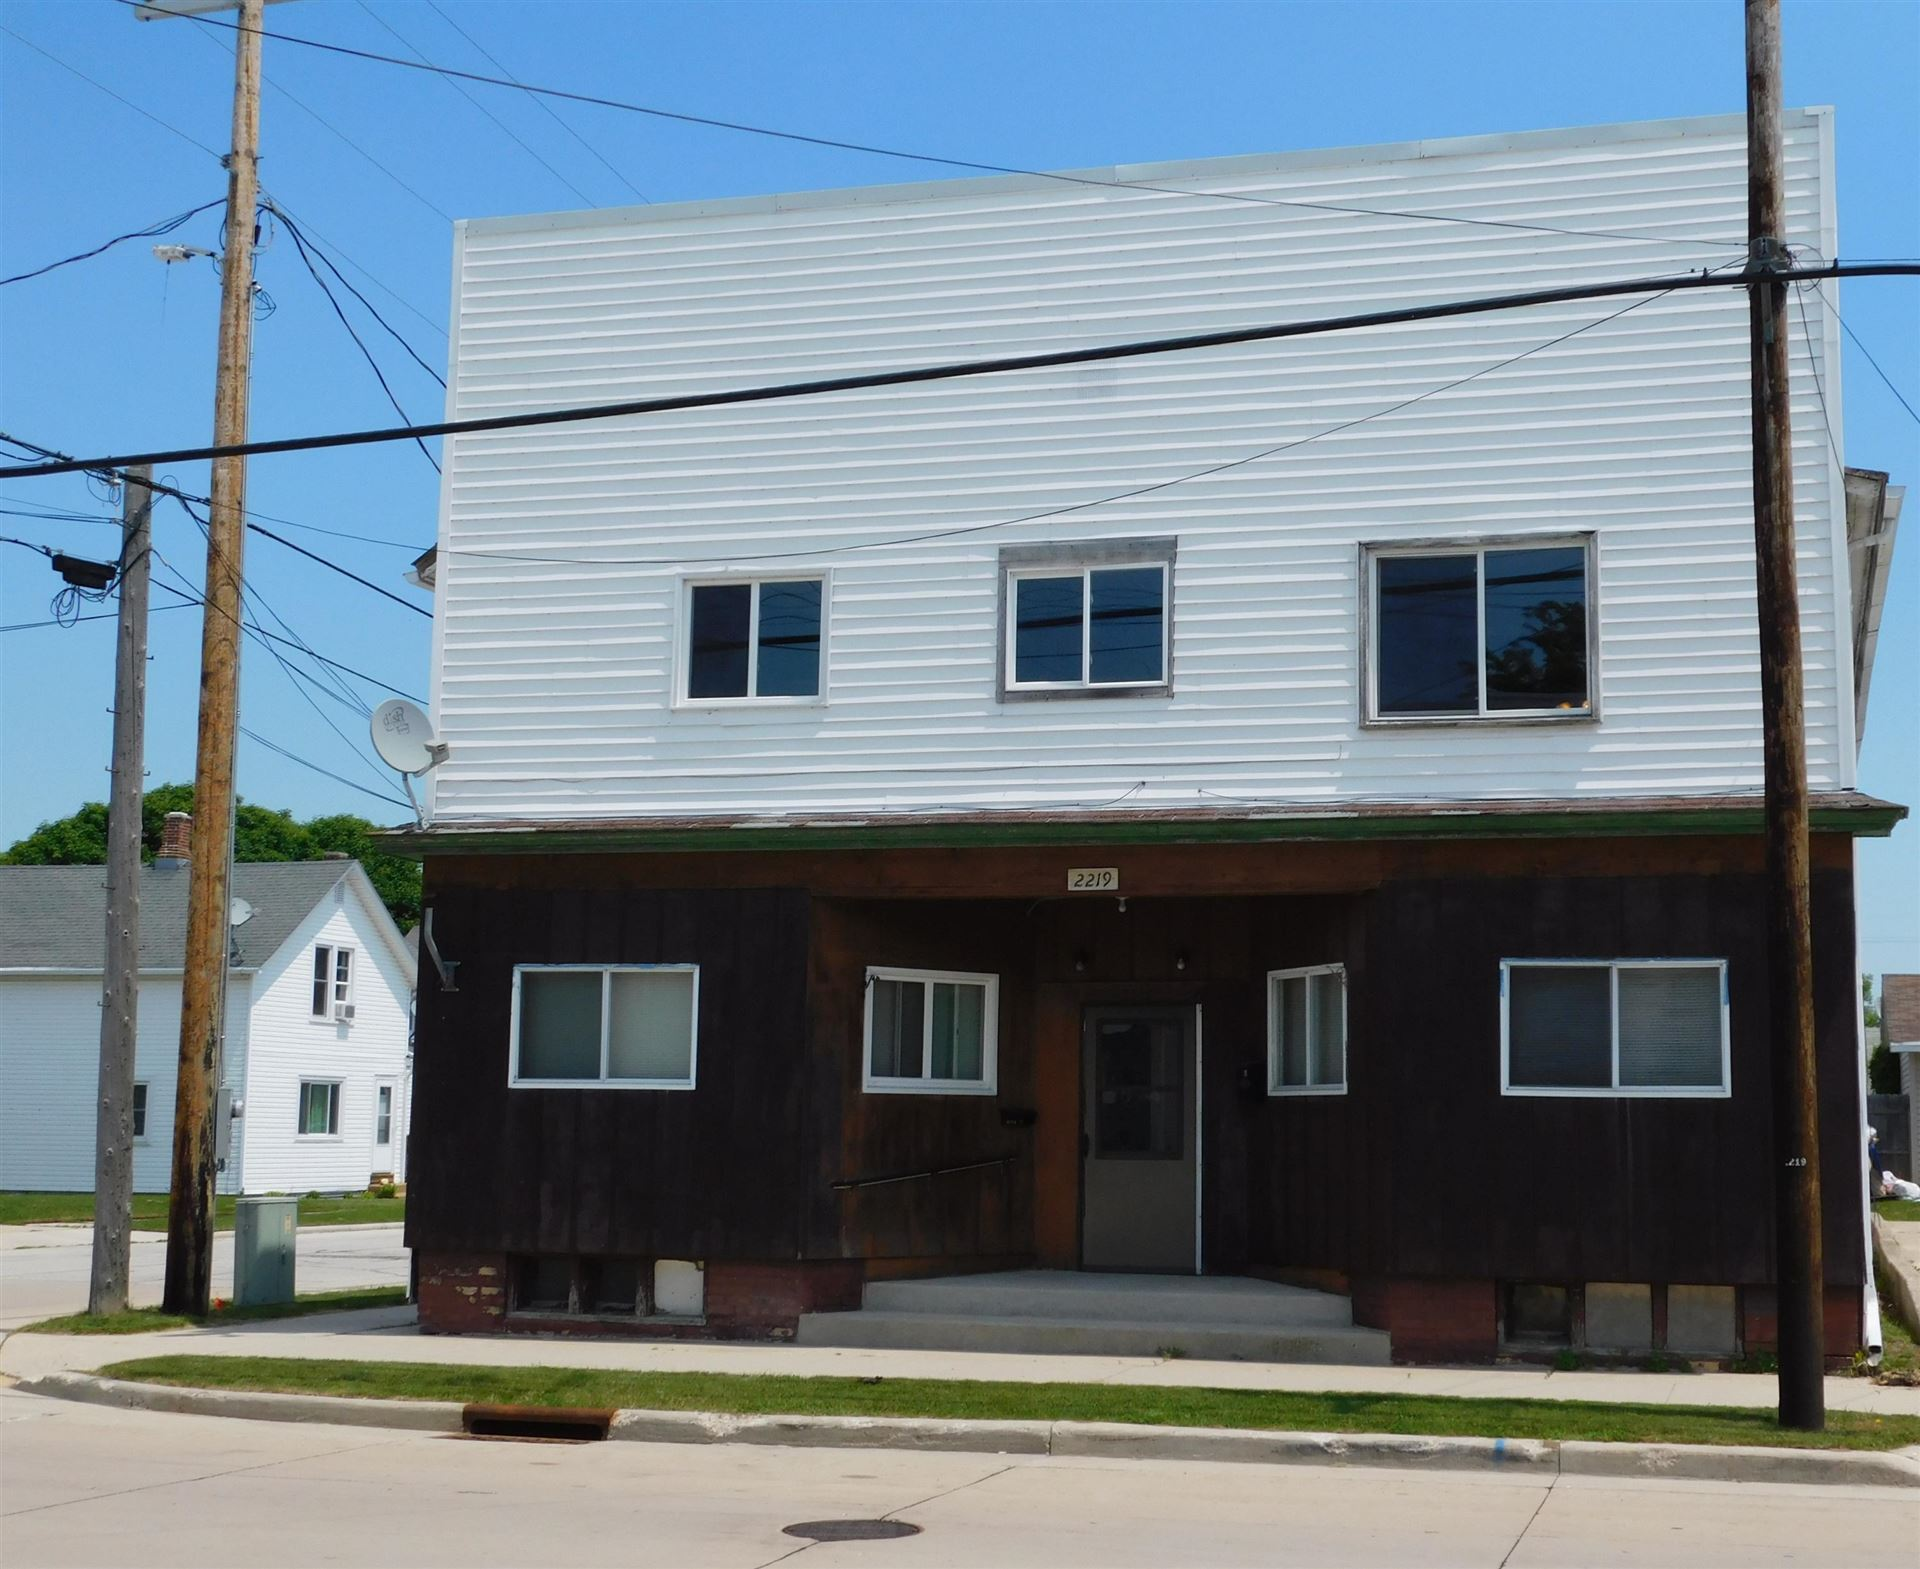 2219 Adams St, Two Rivers, WI 54241 - #: 1694792